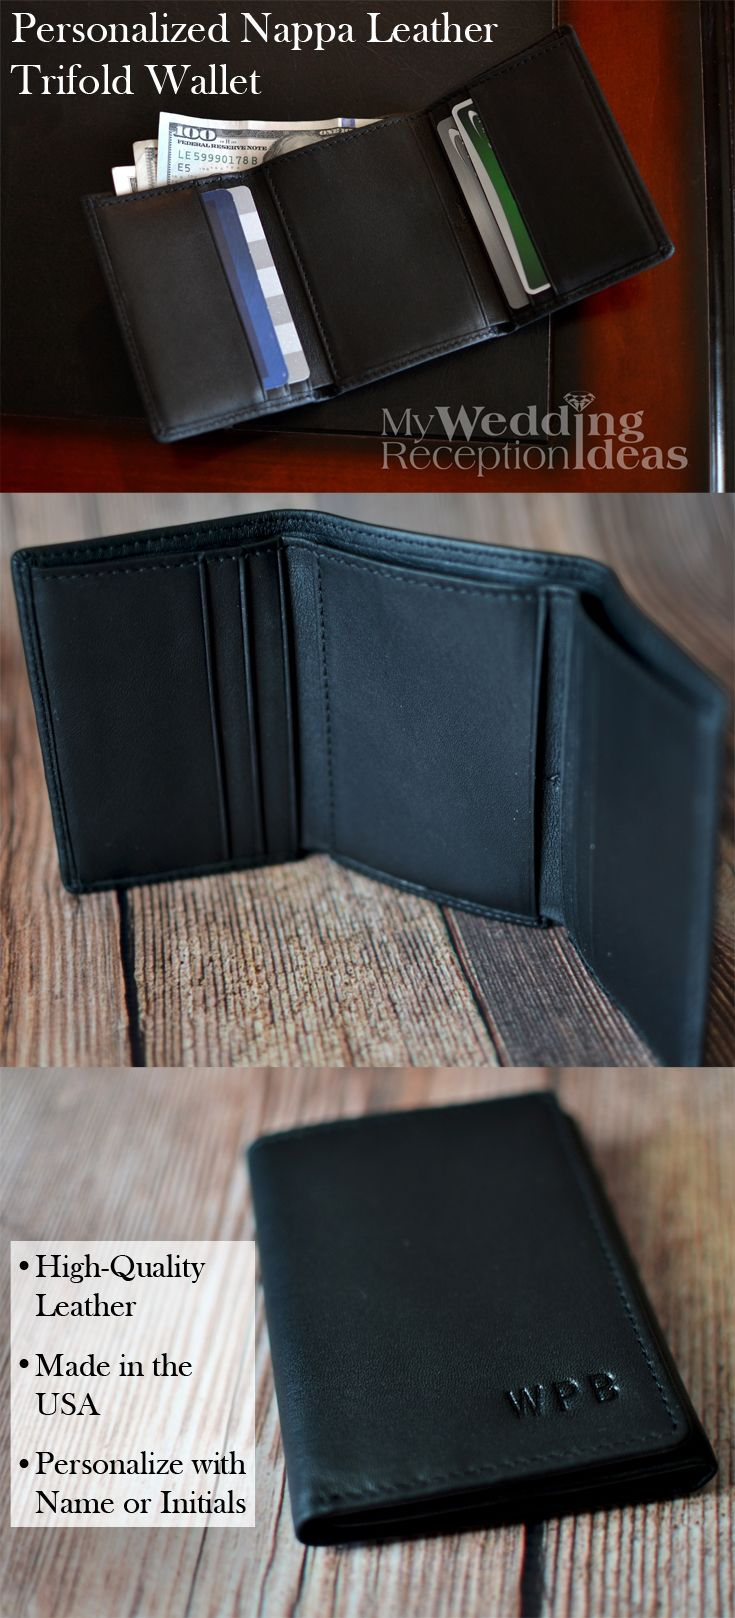 A traditional gift you can't go wrong with, a trifold wallet personalized with your best man or groomsman's initials or name is a sure winner he can use every day. Whether searching for the perfect gift for your dad, brother, best friend or any man in your wedding party, a hand-made leather wallet made in the U.S.A. will make everyone on your gift list smile. This wallet can be ordered at http://myweddingreceptionideas.com/personalized_long_nappa_leather_trifold_wallets.asp